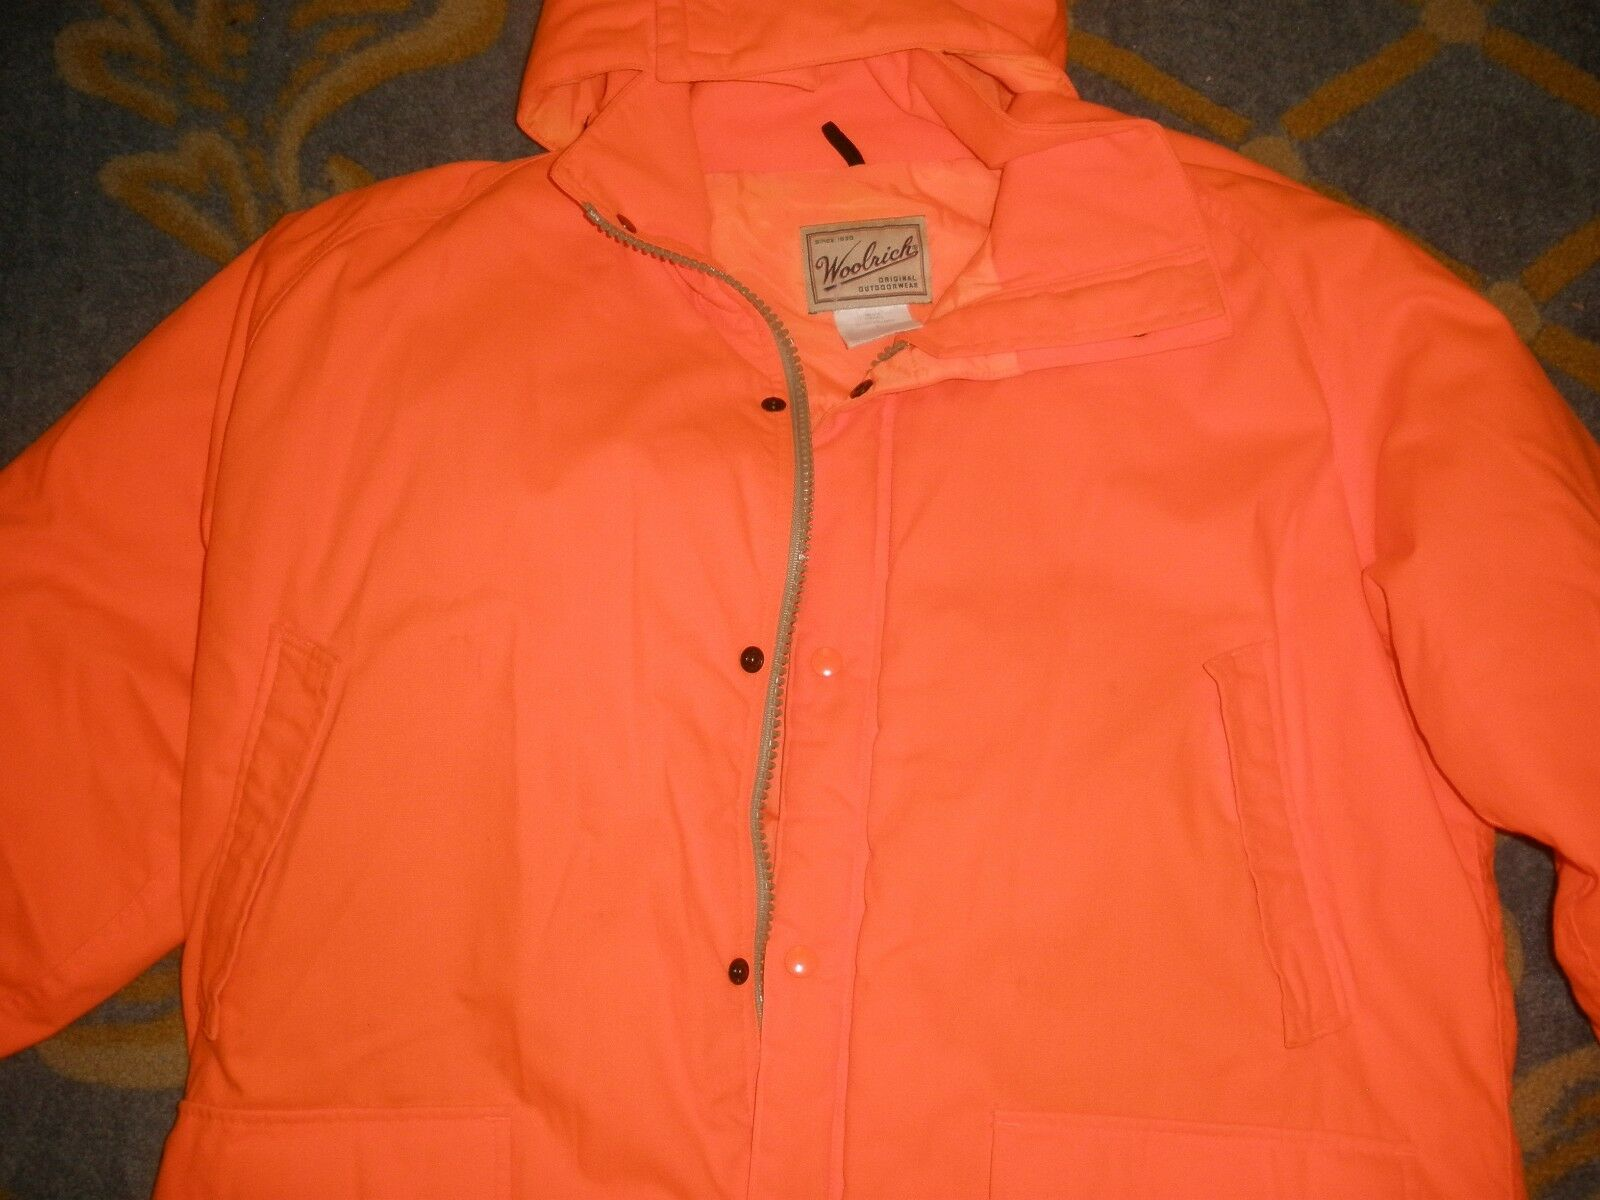 HUNTING Woolrich Original Outdoorwear Hood Coat Thermolite Thermolite Thermolite Plus Large Orange f0d1a2